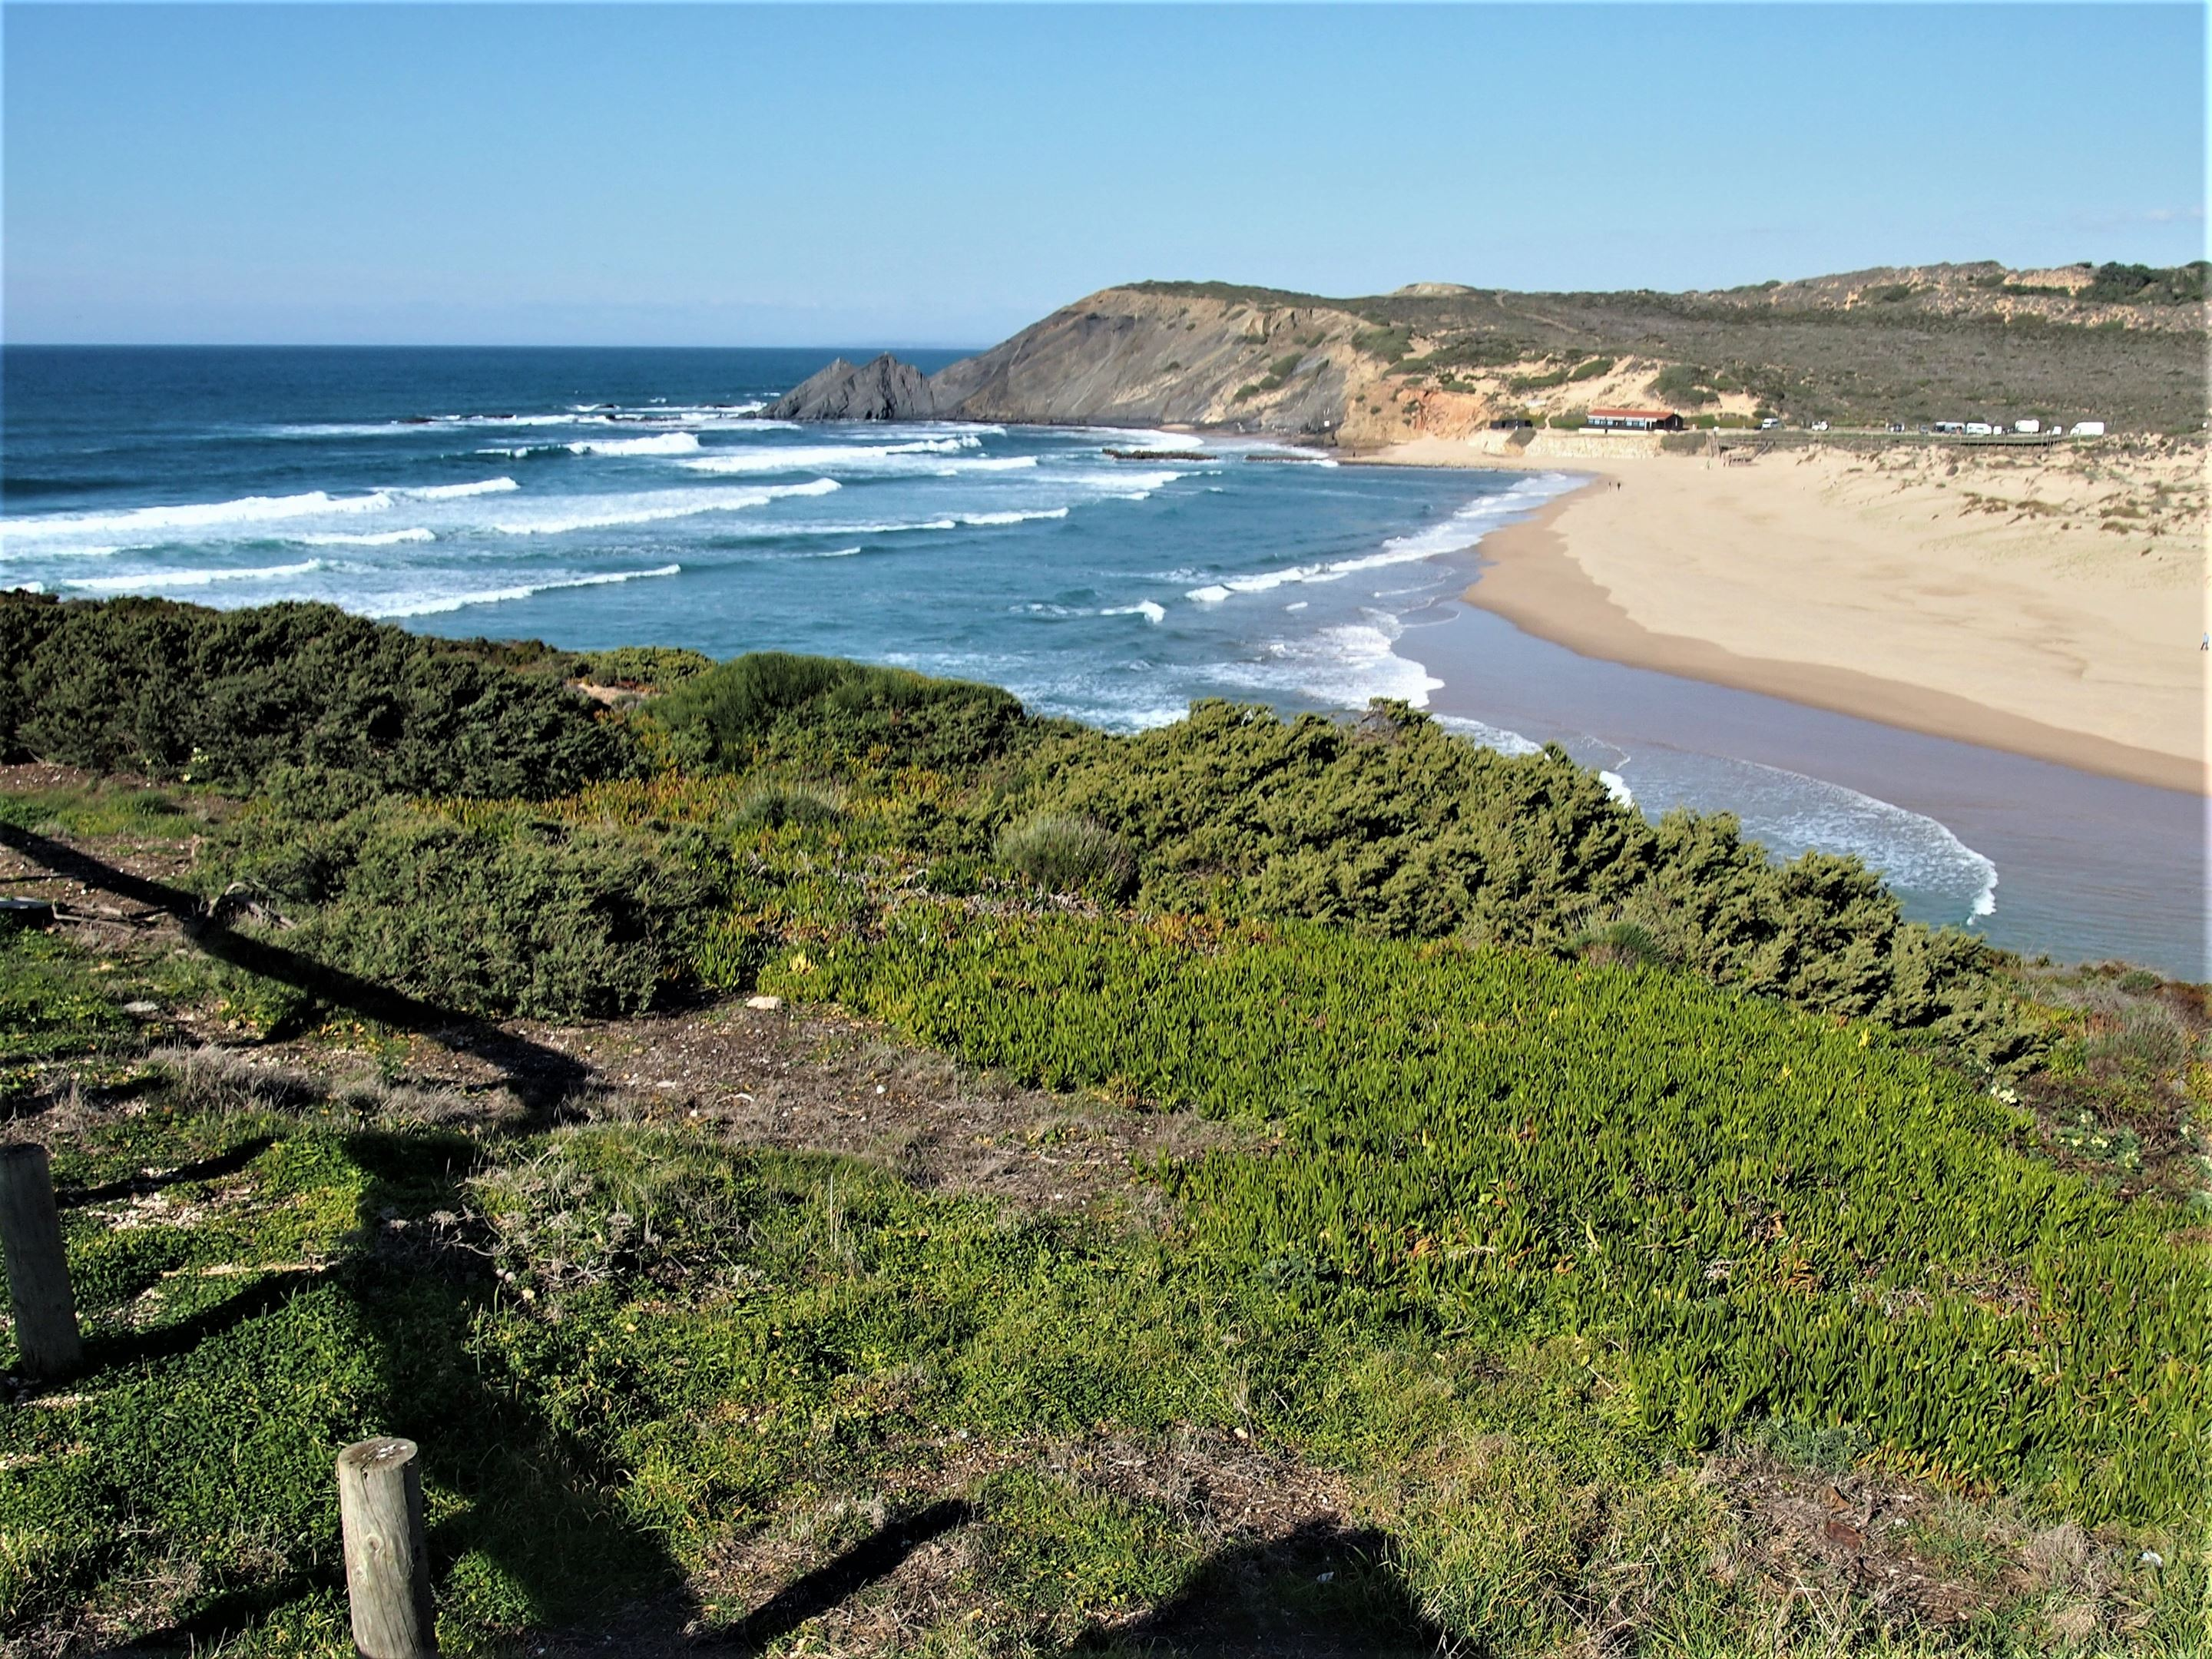 Praia da Amoreira, with the Ribeira de Aljezur (Aljezur River) in the foreground.